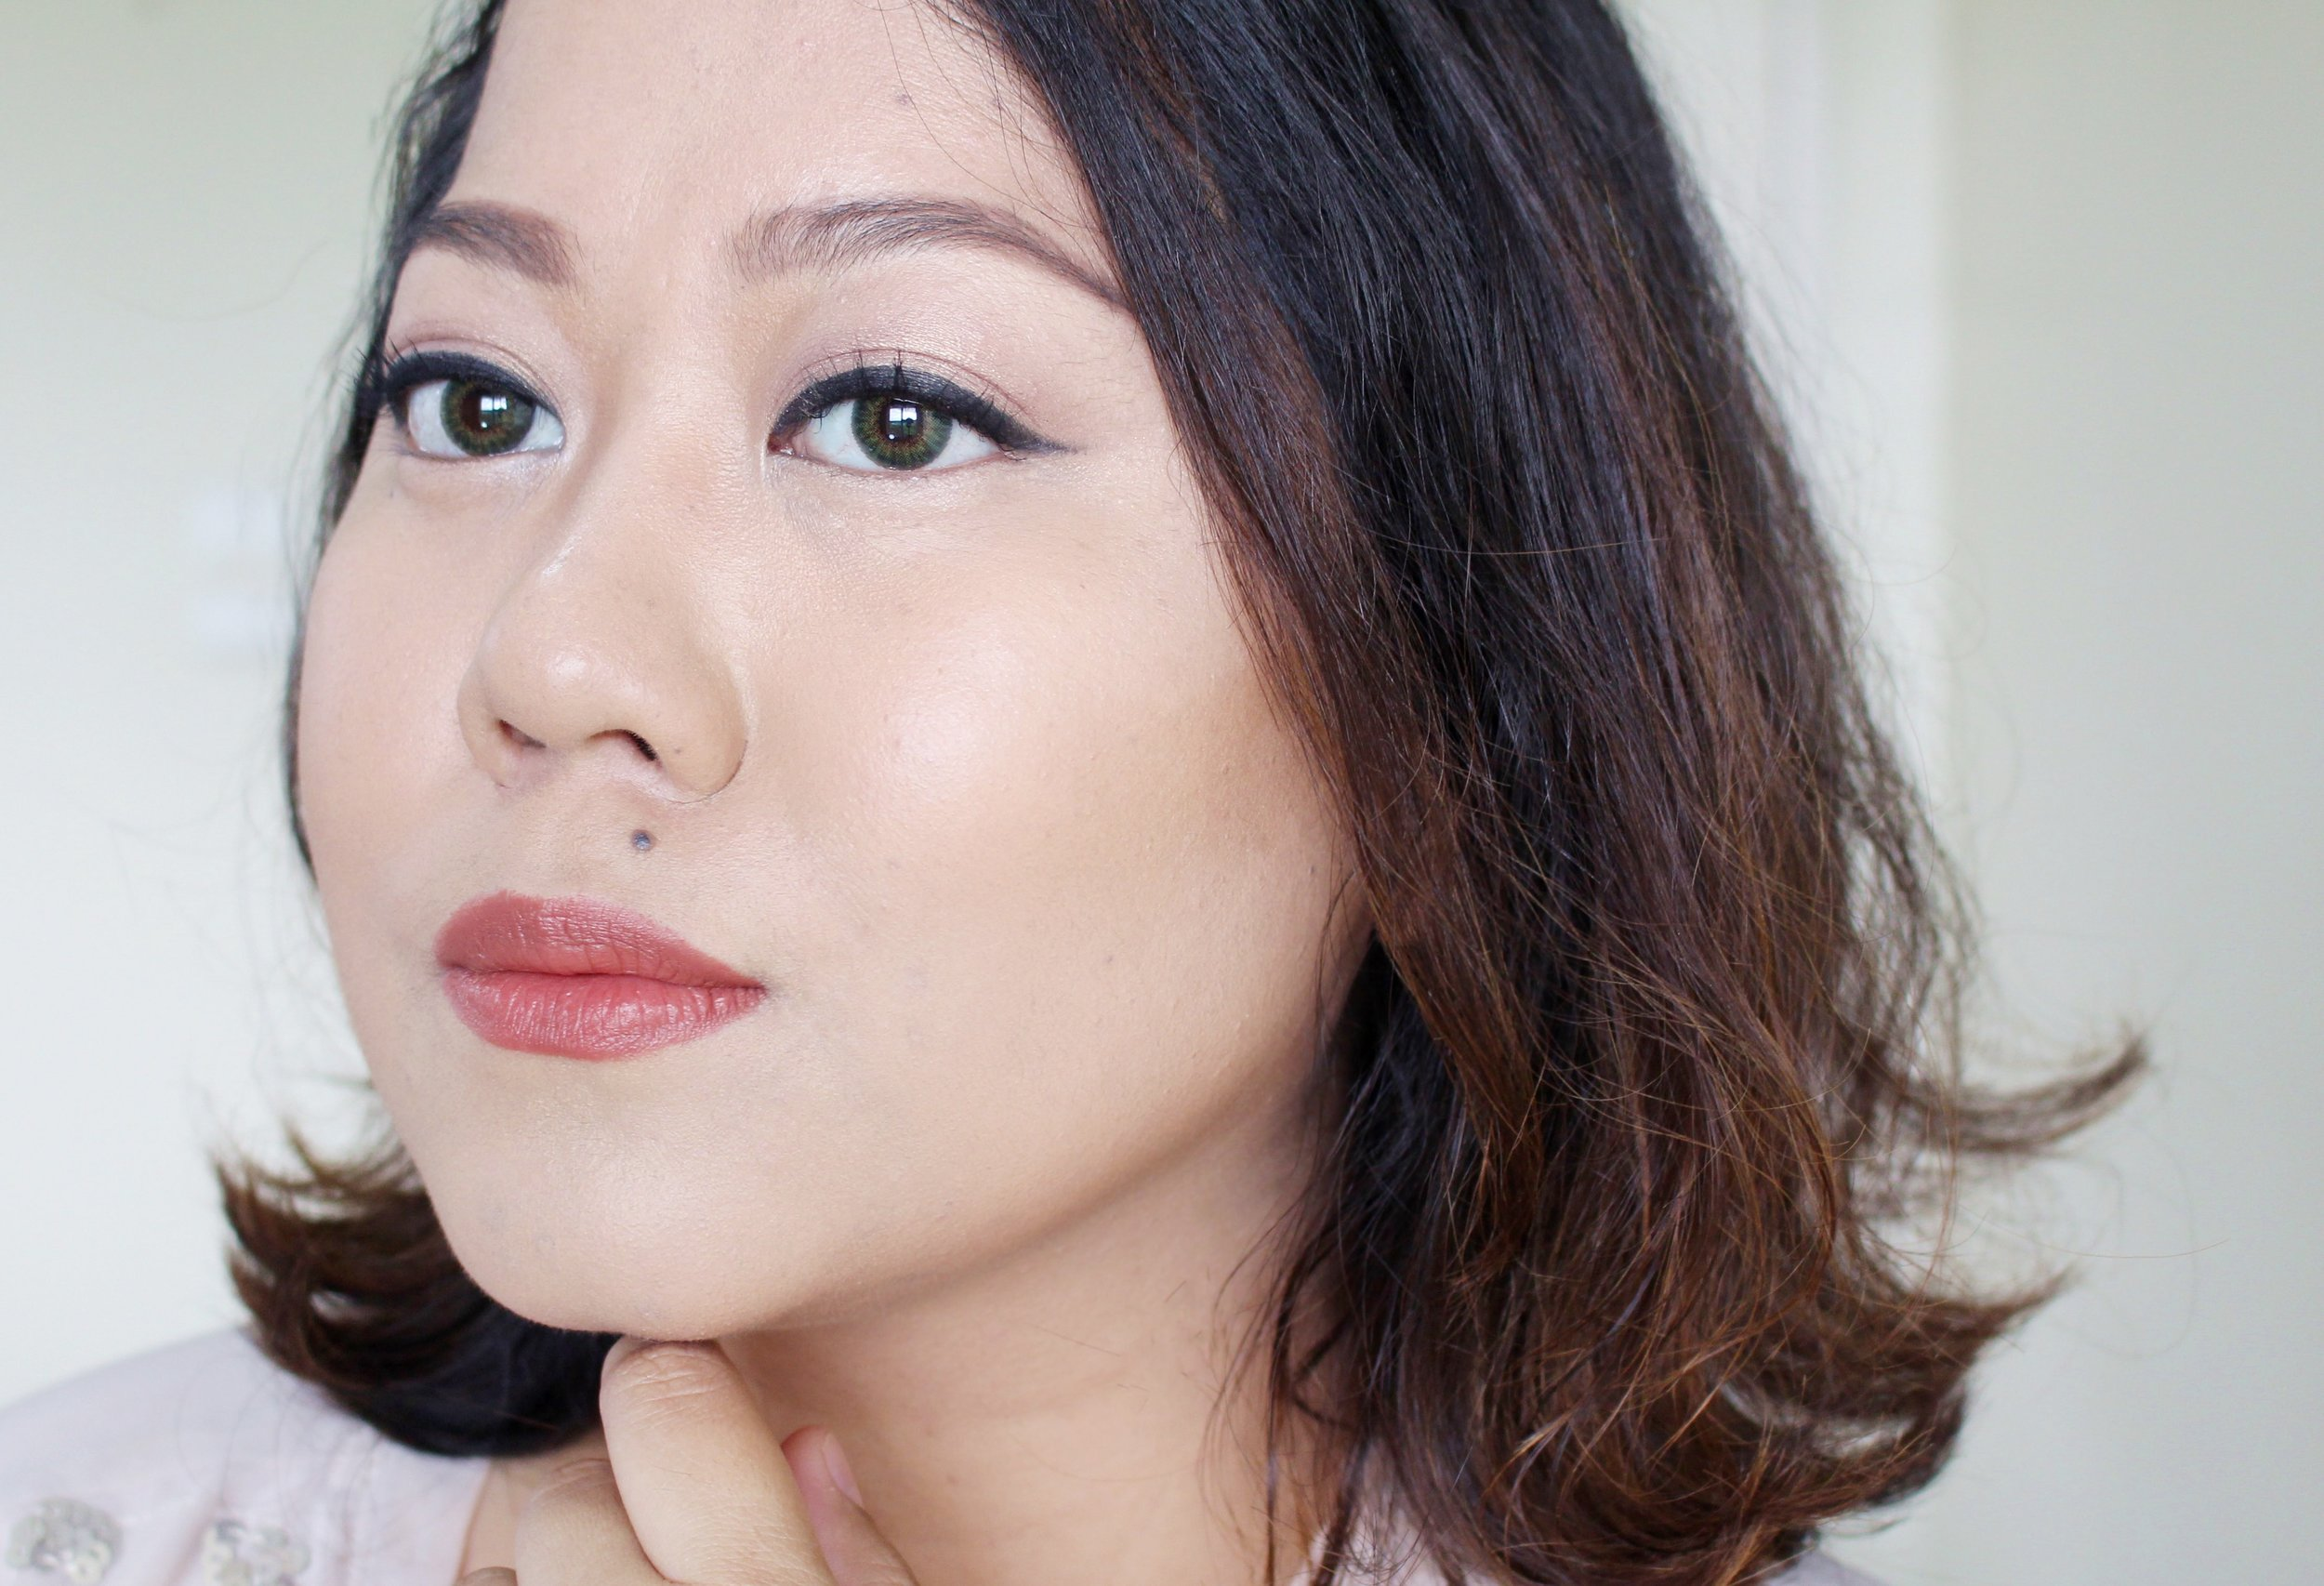 Wearing the Essence Pure Nude  on the bridge of the nose and cheekbones. Love how it's almost imperceptible but the glow is there.